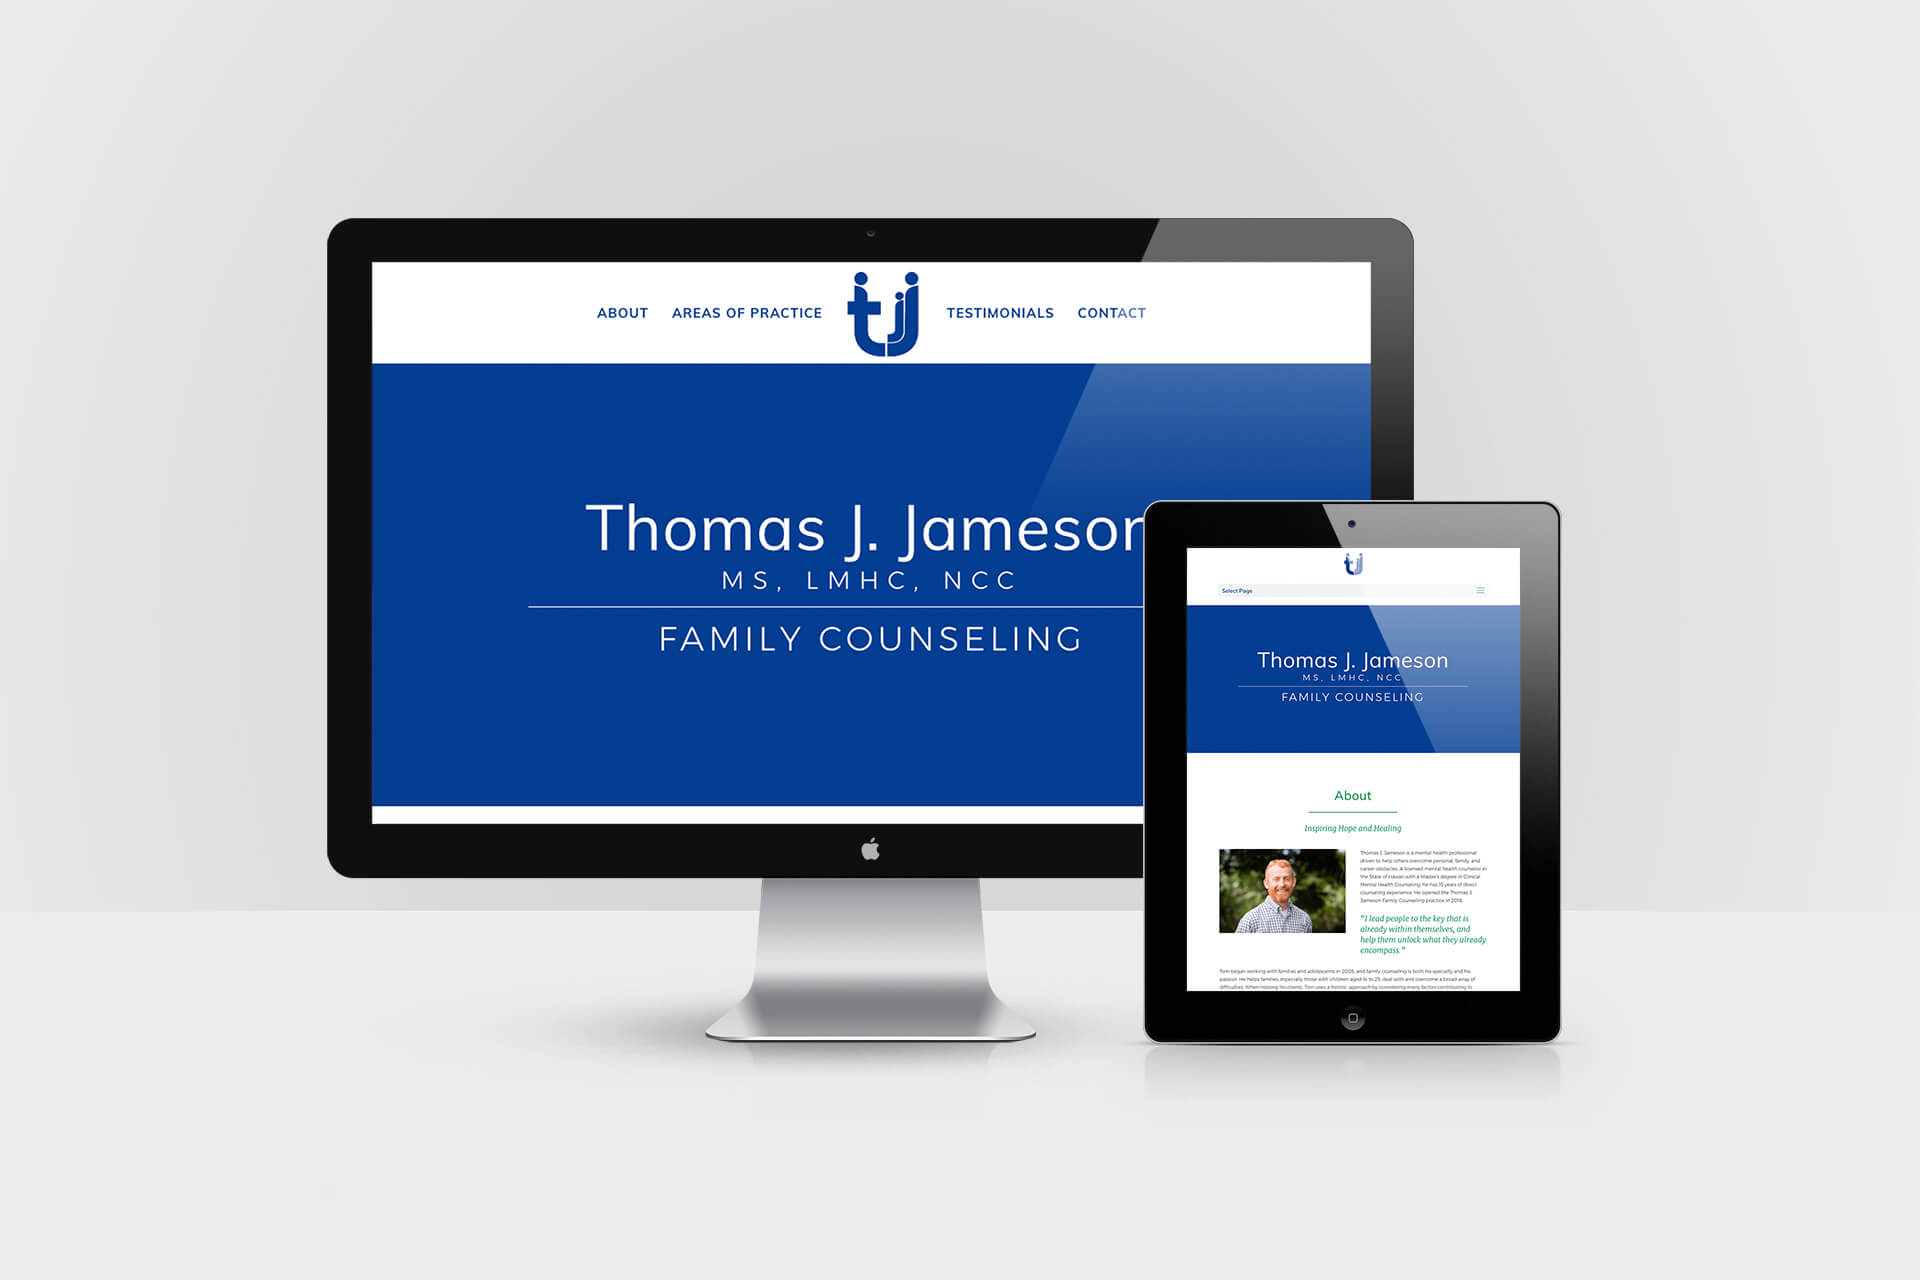 Thomas J Jameson Family Counseling — Responsive Website Design